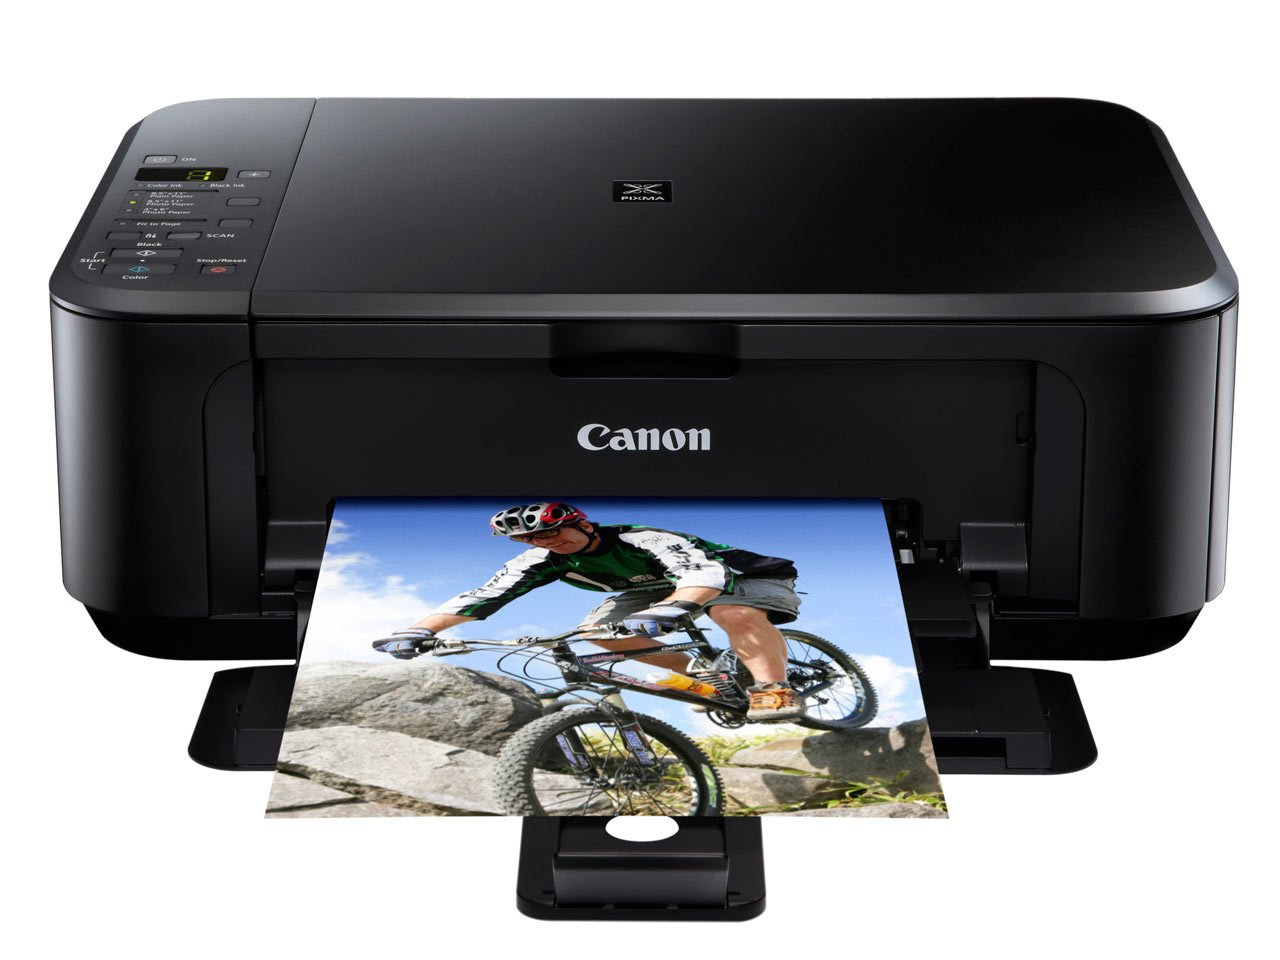 Amazon.com: Canon PIXMA MG2120 Color Photo Printer with Scanner and Copier:  Electronics